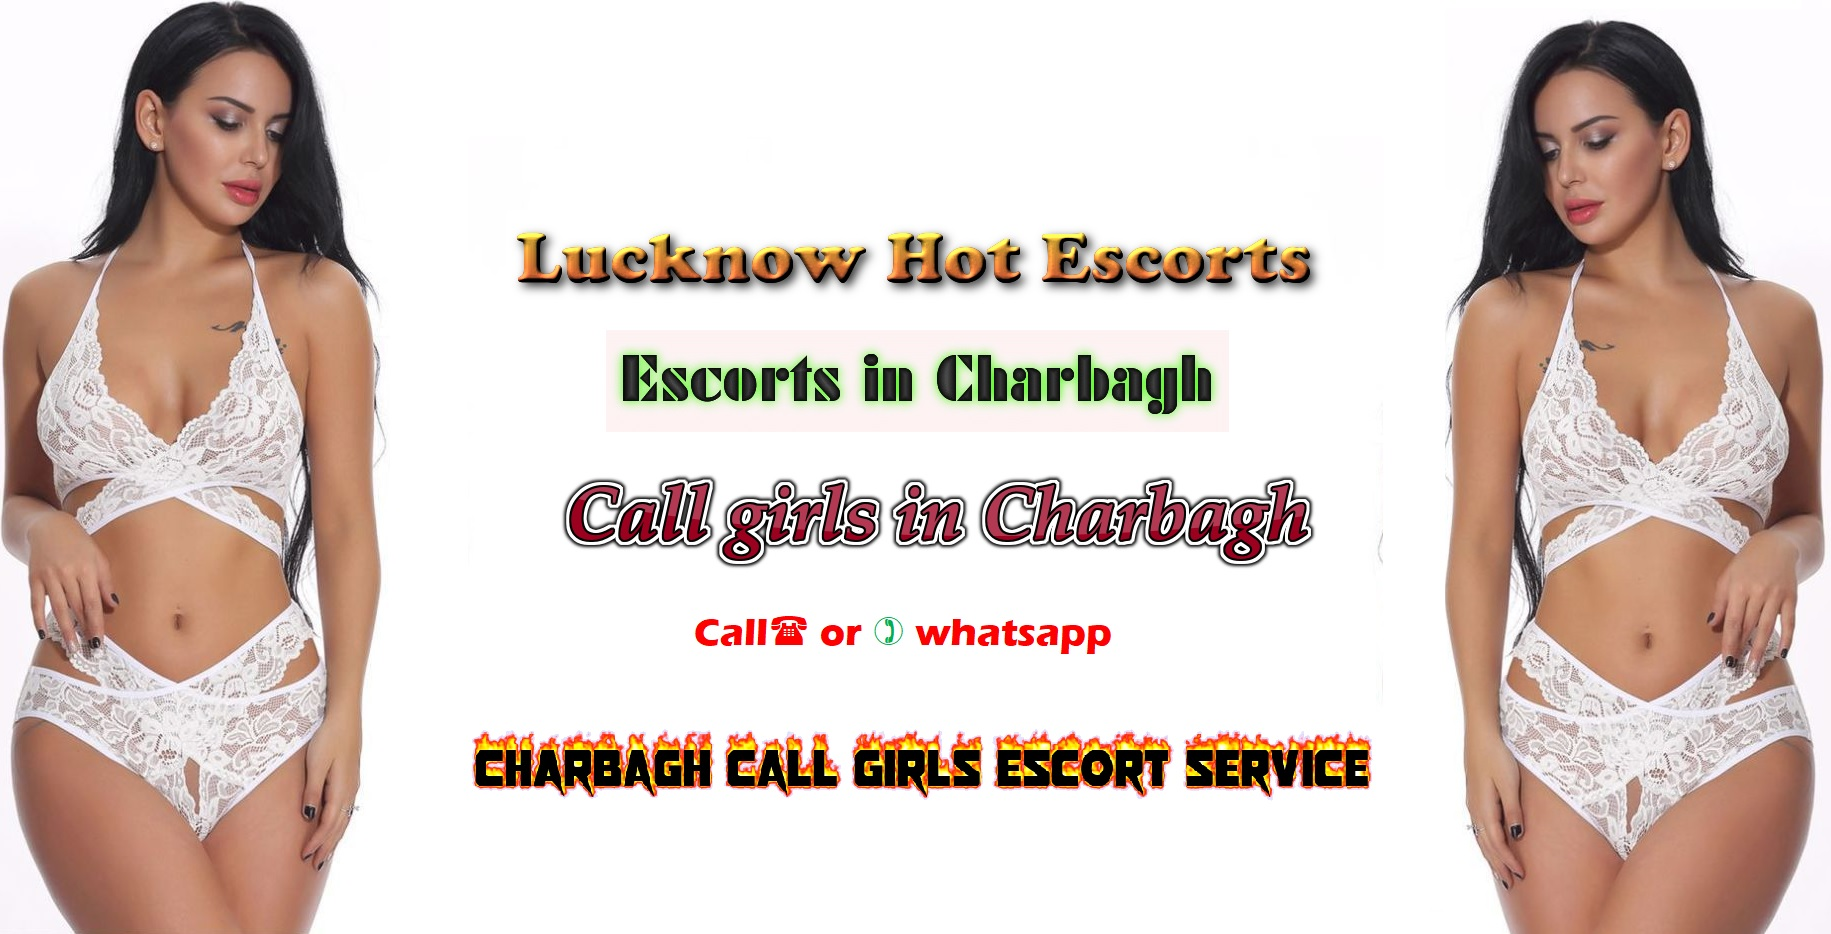 Charbagh